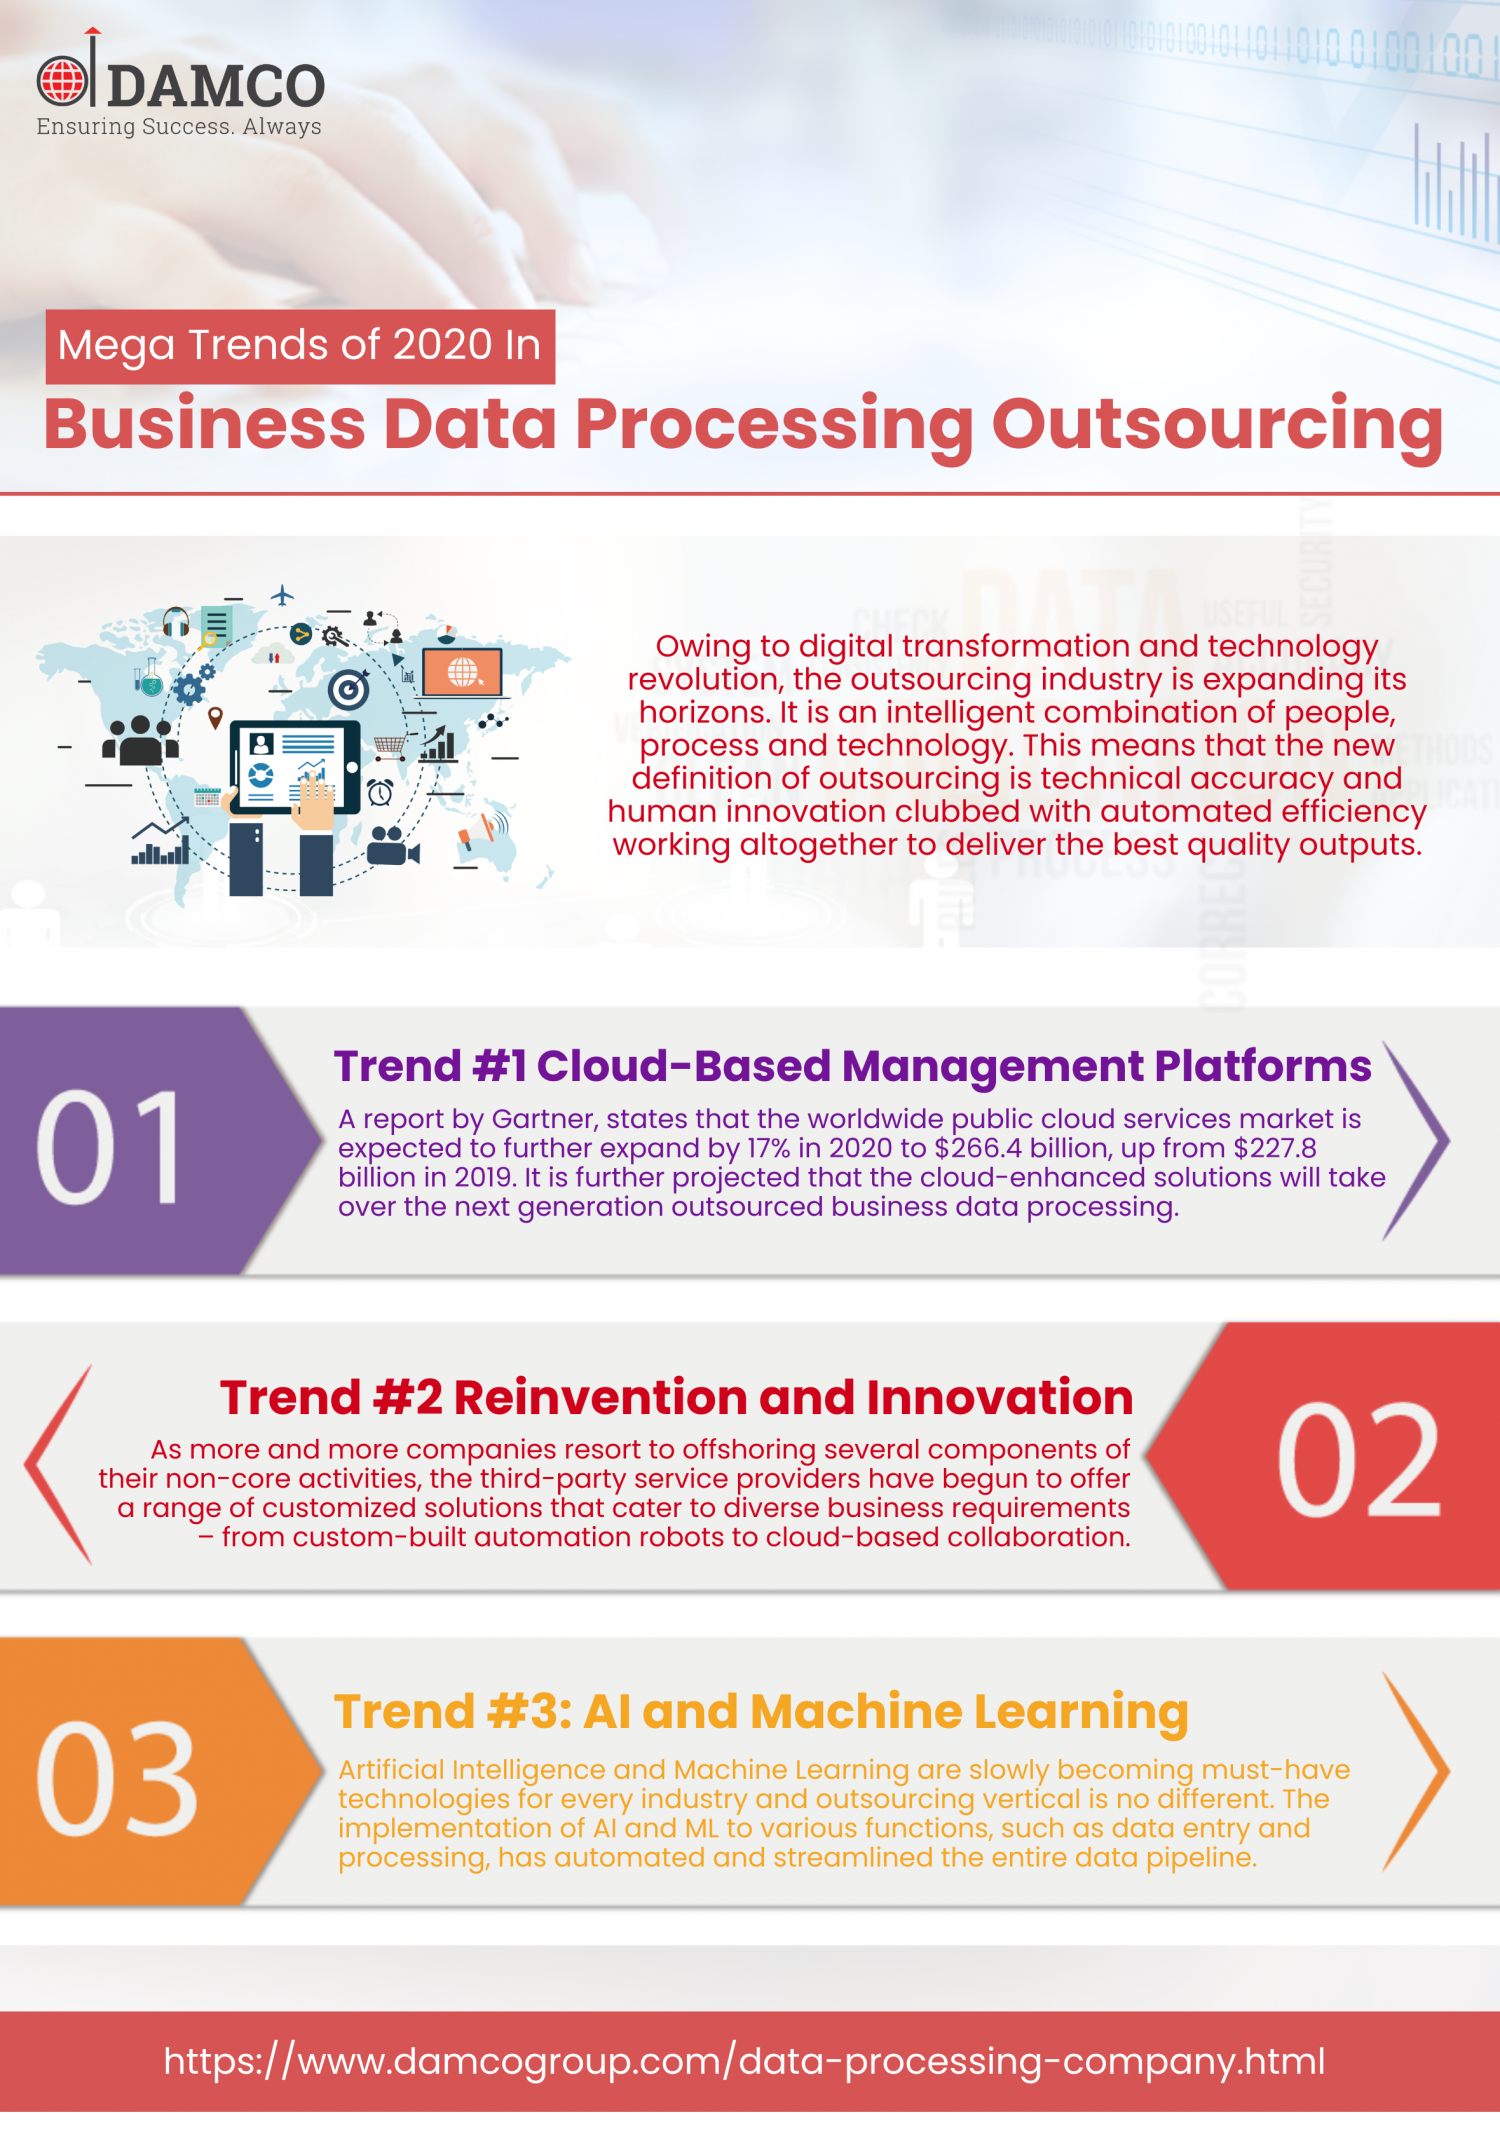 Mega Trends of 2020 in Business Data Process Outsourcing Infographic